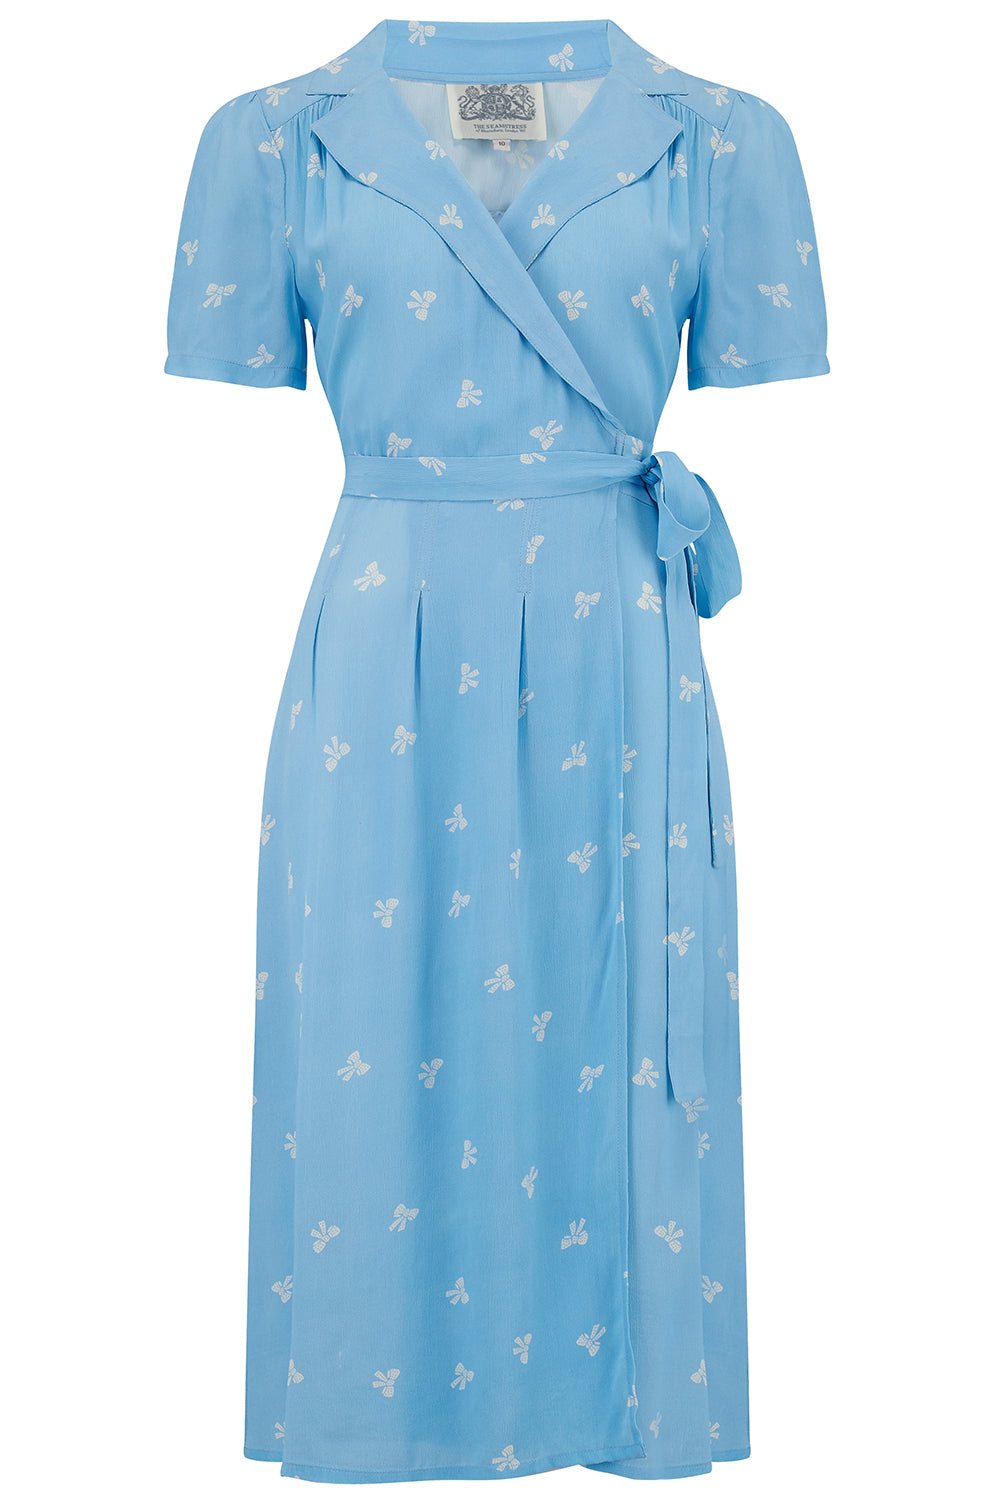 "The Seamstress of Bloomsbury ""Peggy"" Wrap Dress in Sky Blue with Bow Print, Classic & Authentic 1940s Vintage Style - RocknRomance Clothing"